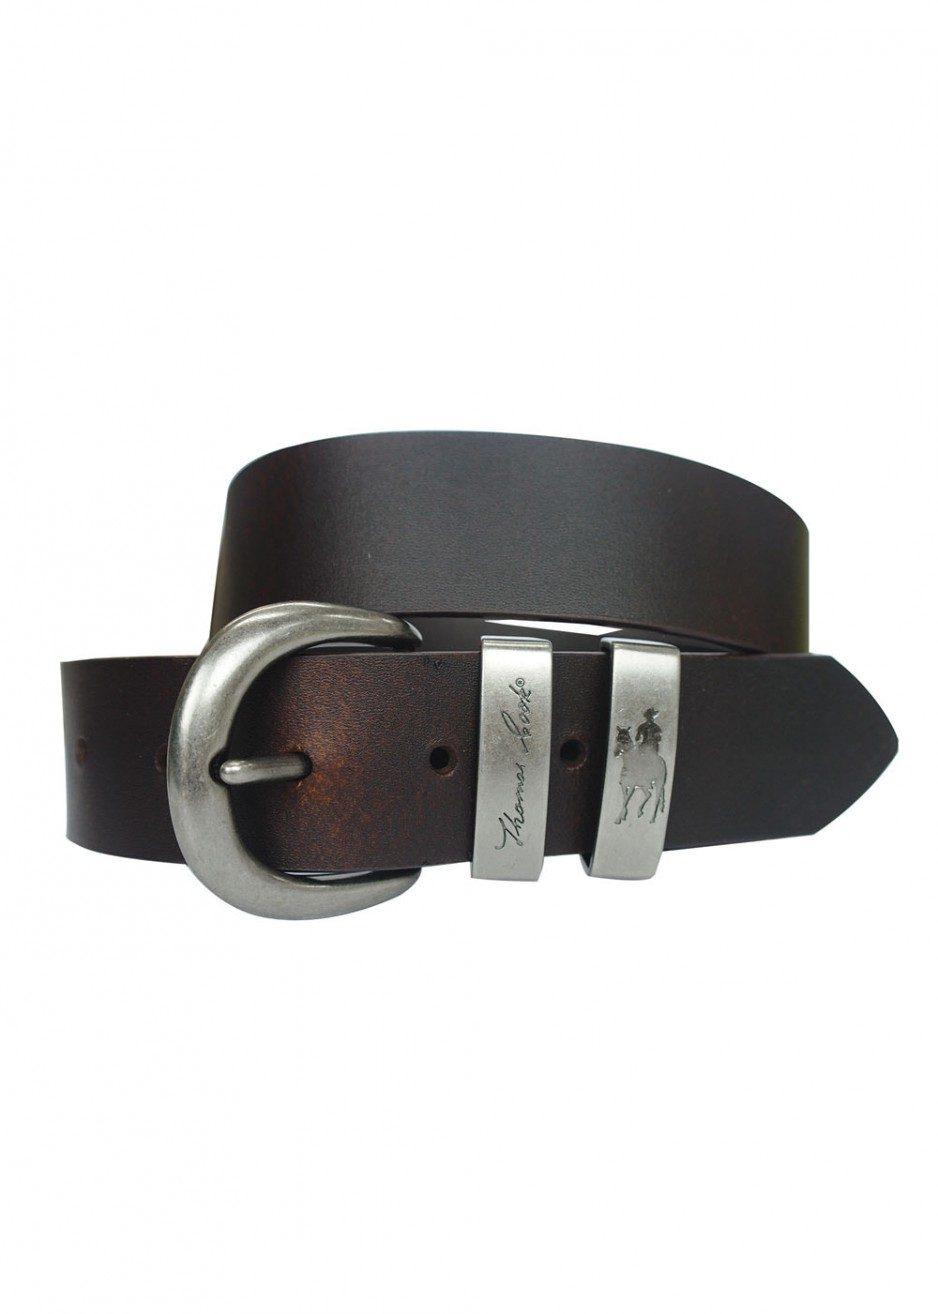 SILVER TWIN KEEPER BELT